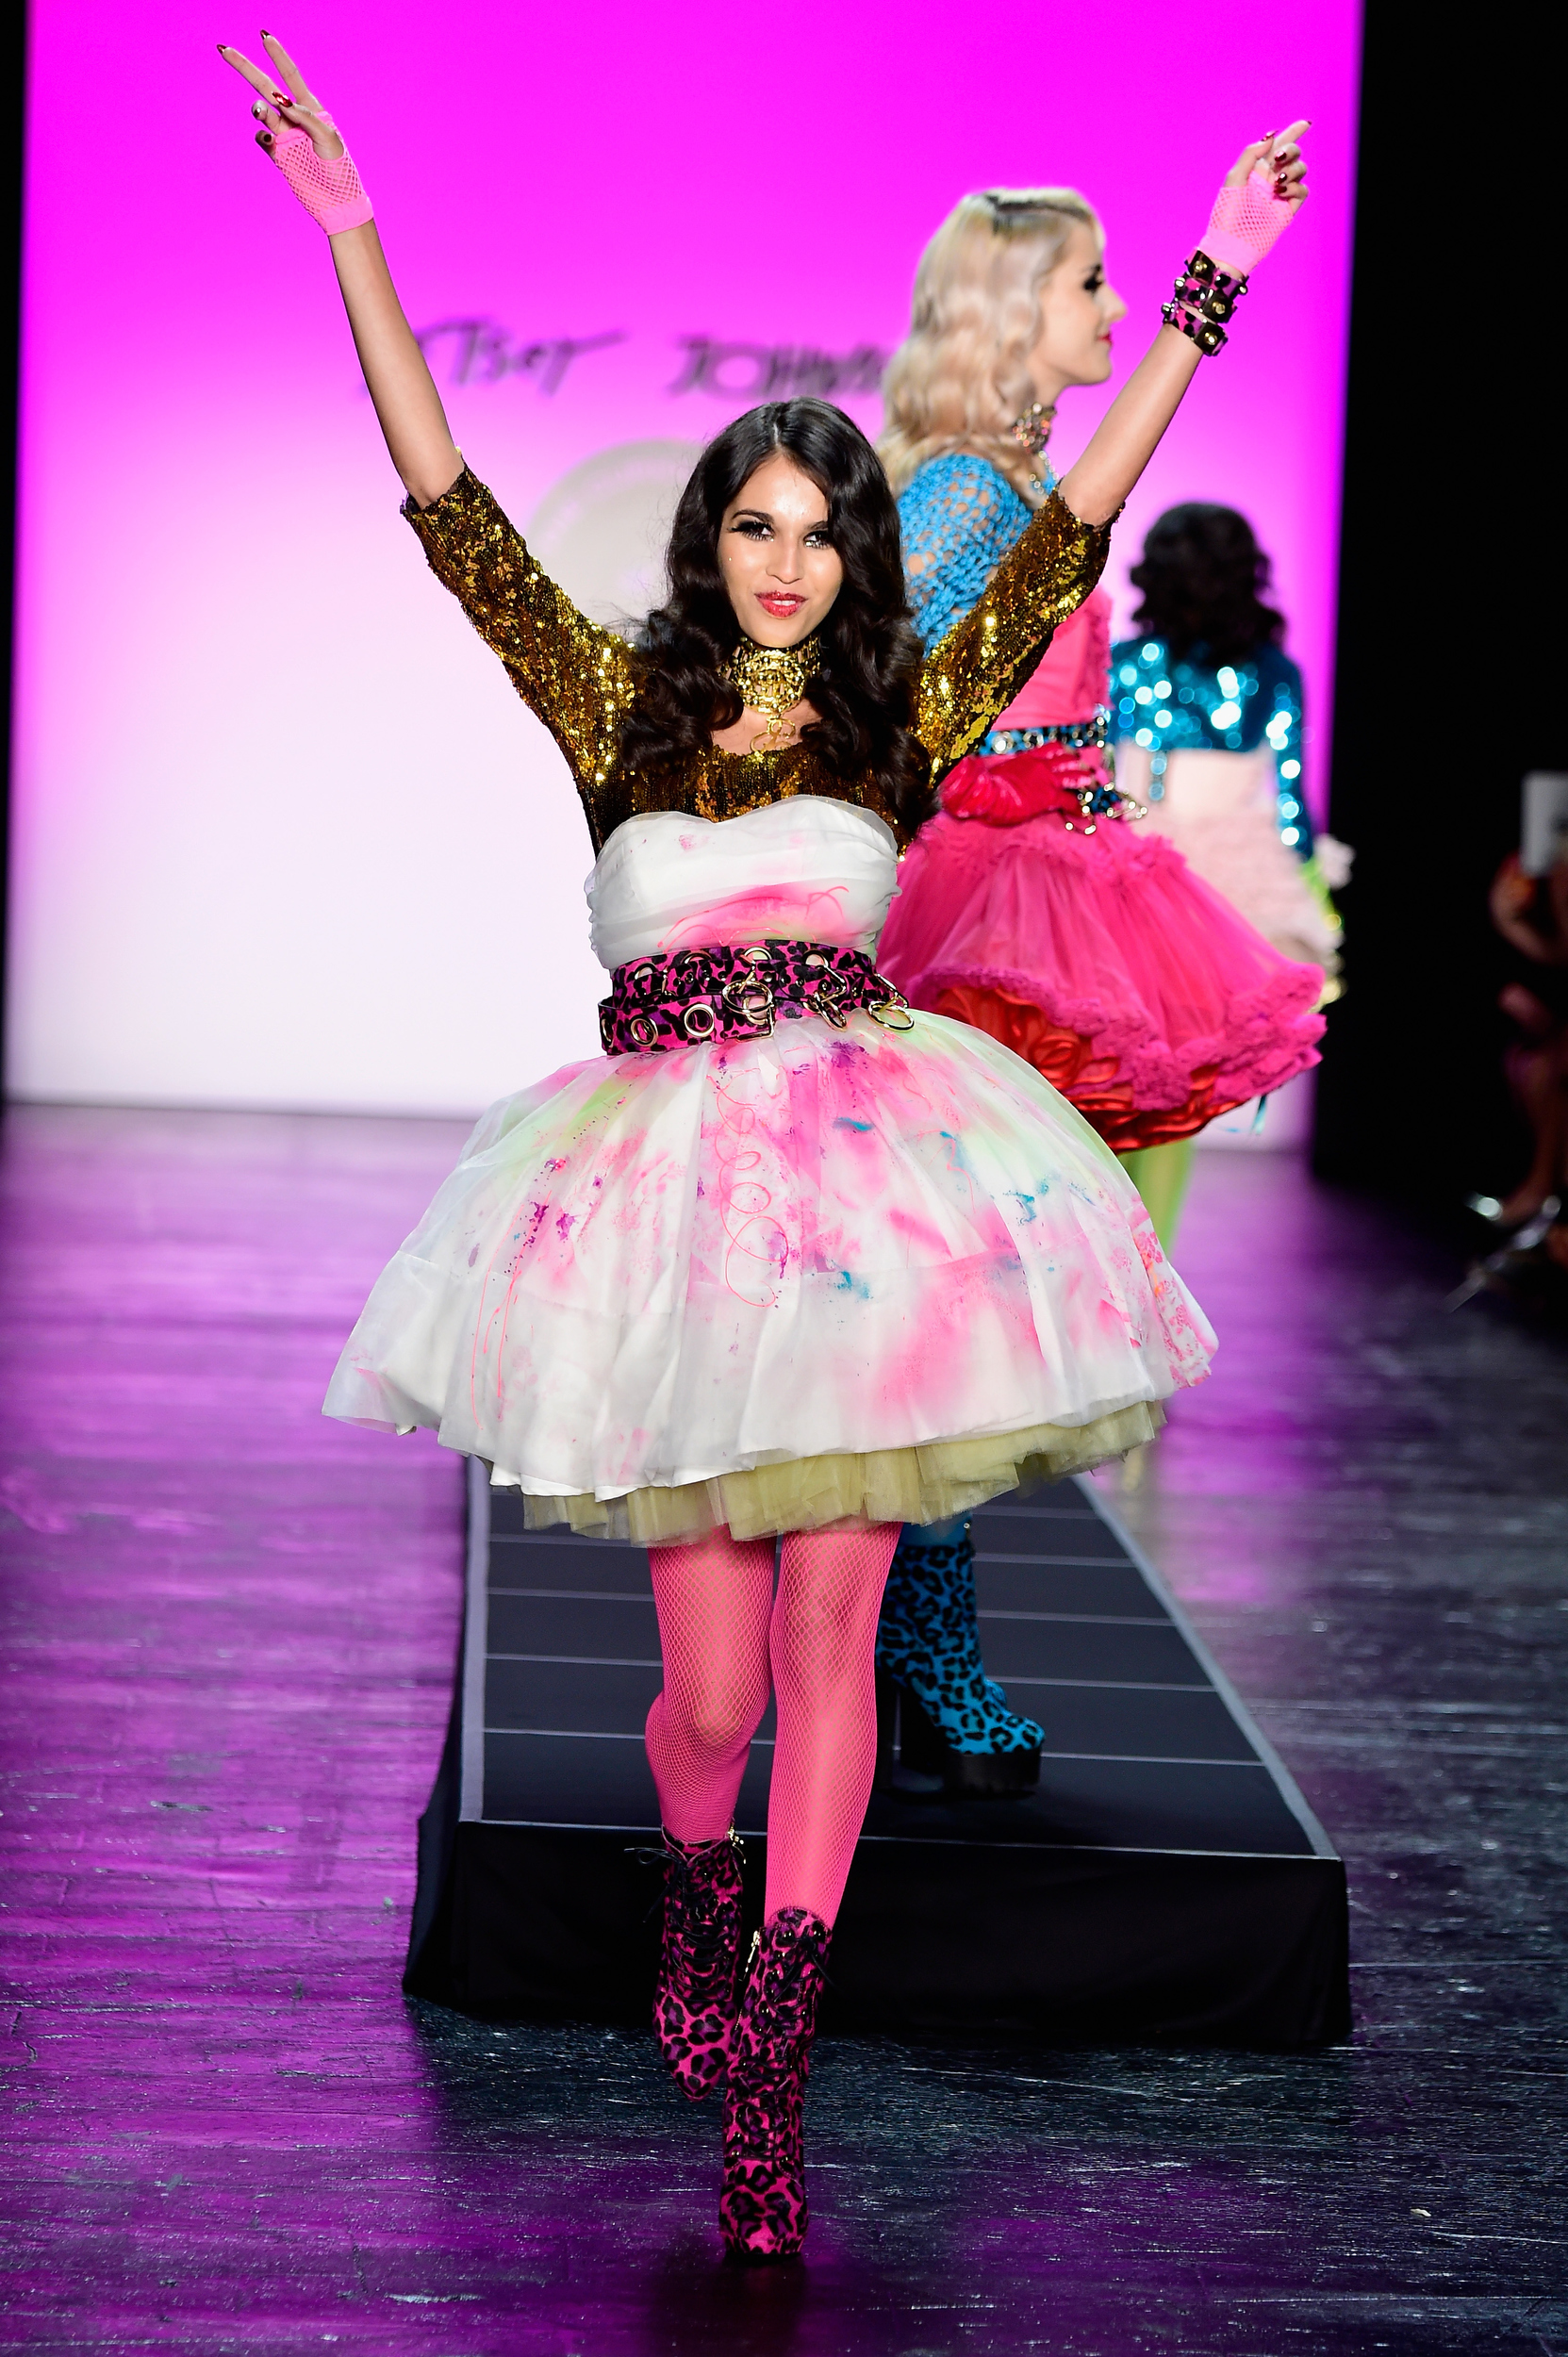 Betsey Johnson's costume party was a blast